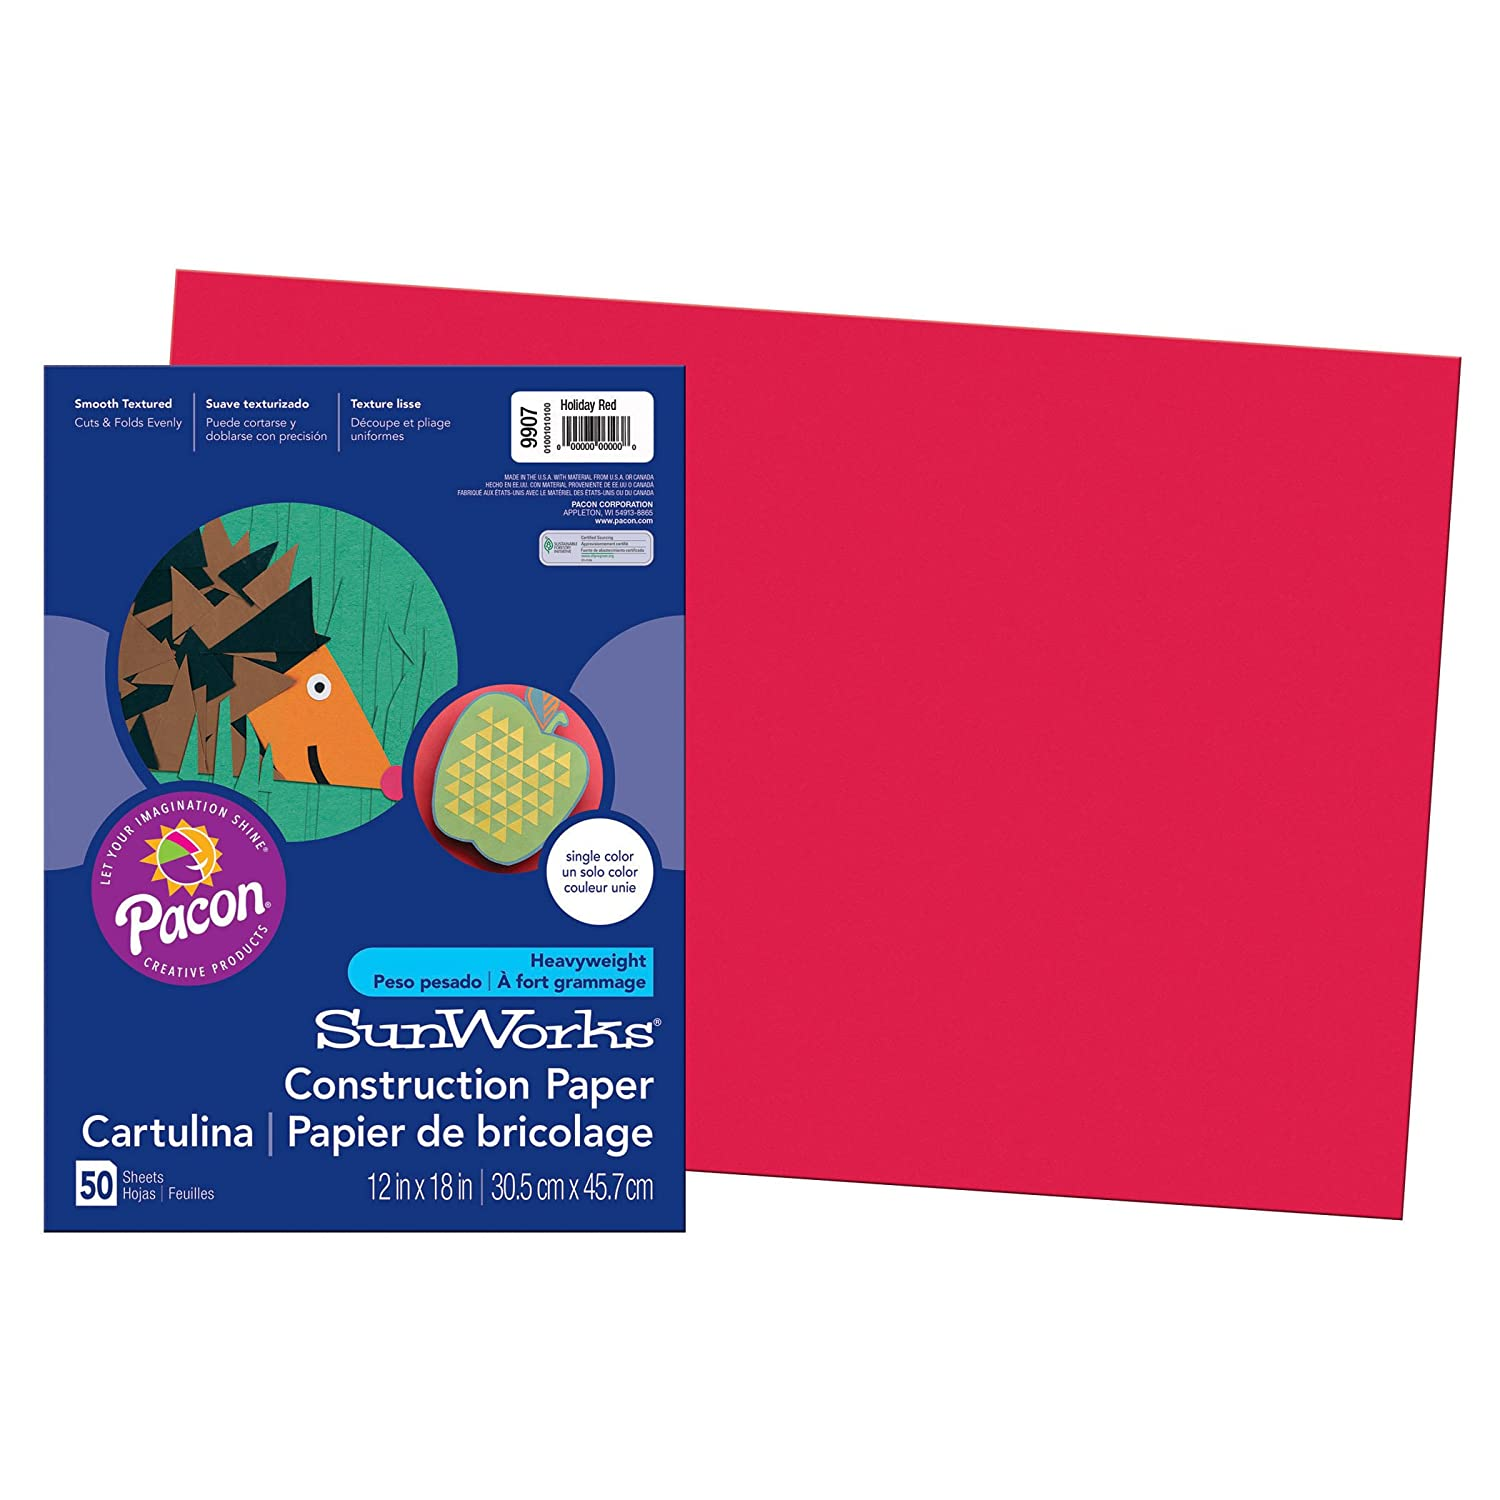 Pacon SunWorks Construction Paper, 12-Inches by 18-Inches, 50-Count, Assorted (6507)